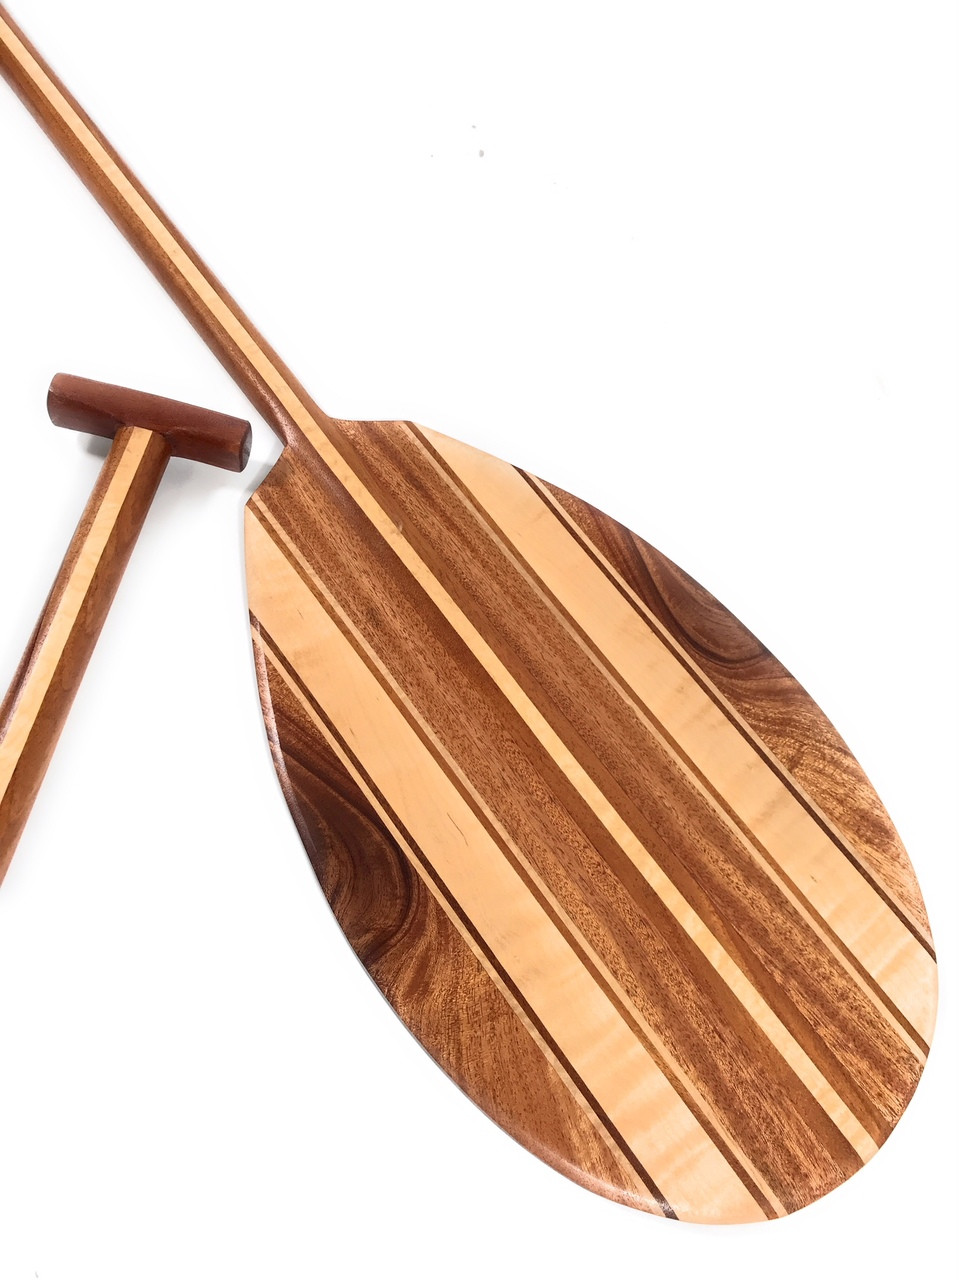 Koa Canoe Paddle 50 Quot W Maple Inlays T Handle Made In